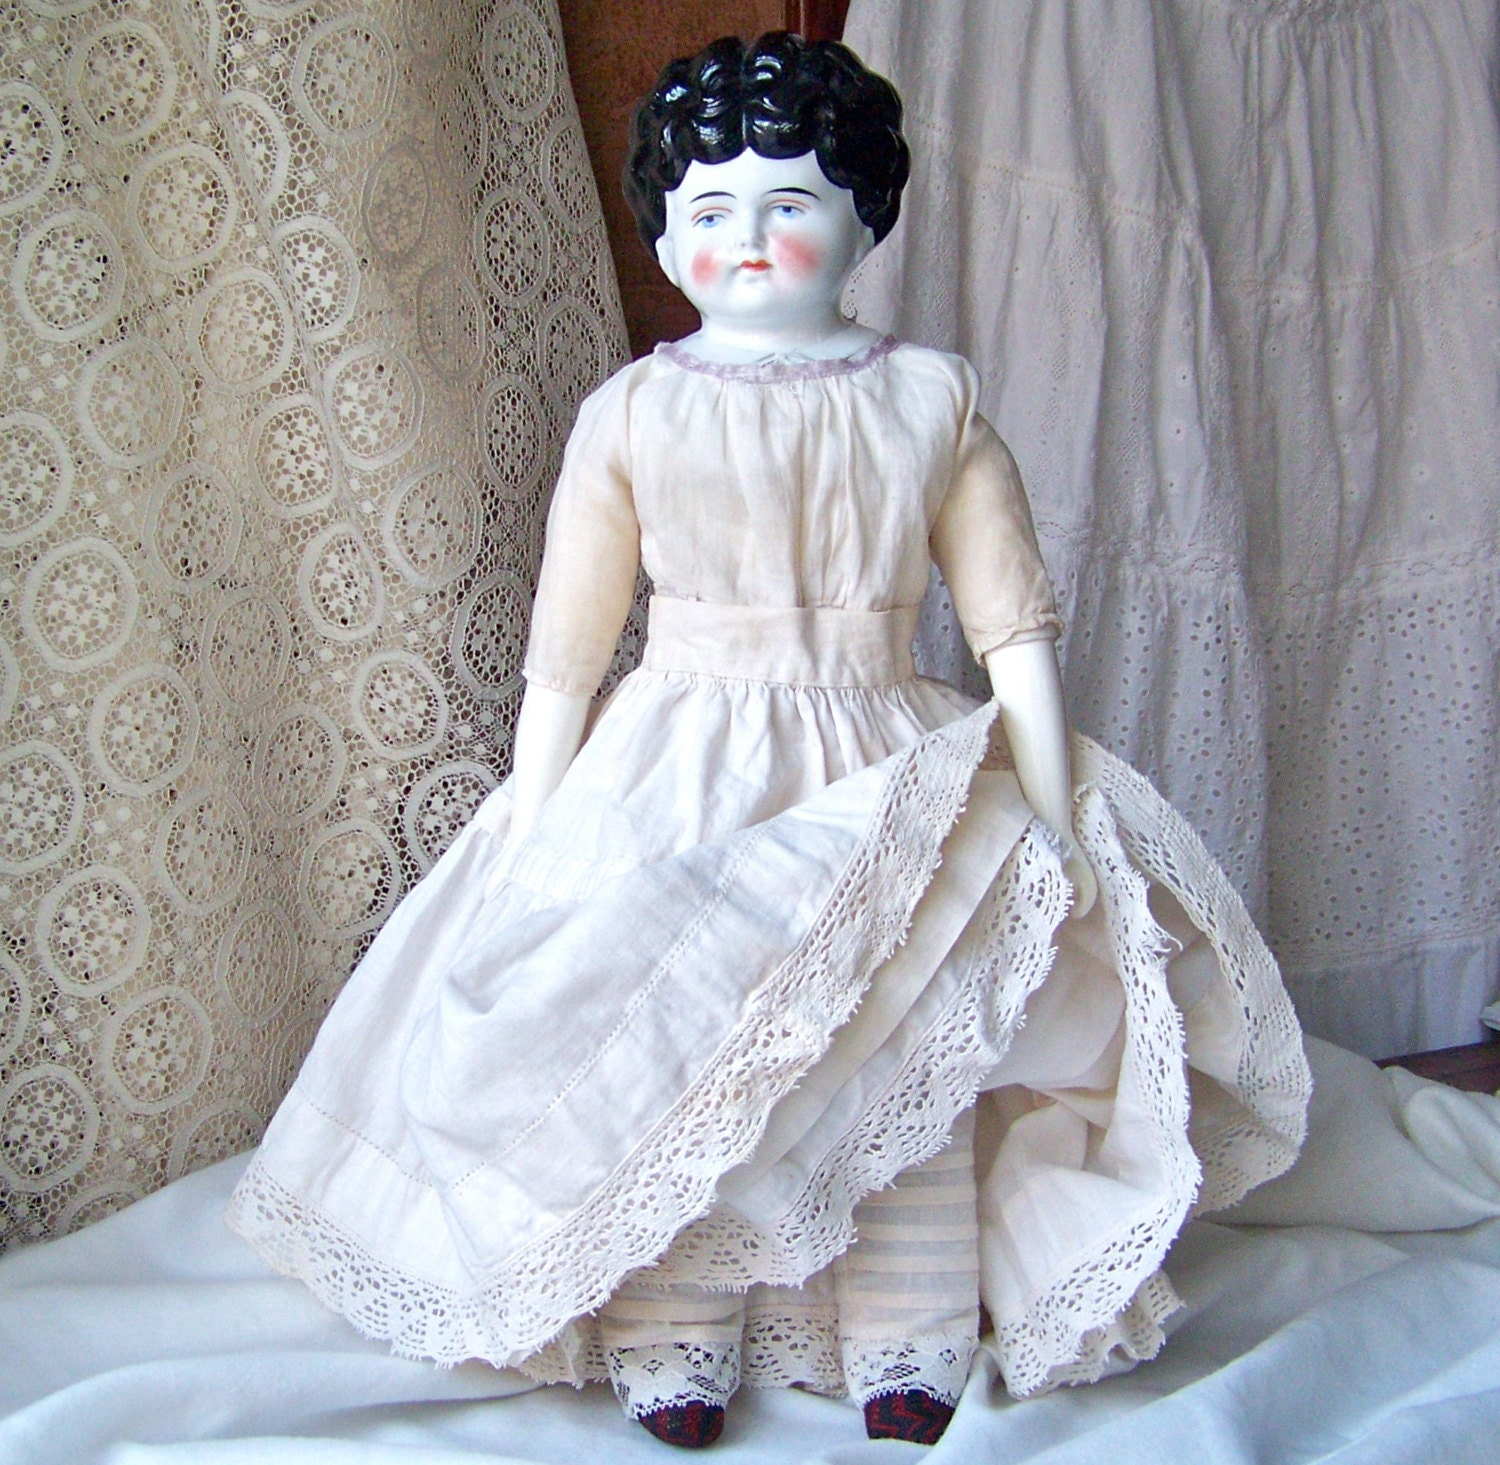 Old Porcelain Head Doll With Leather Hands And Shoes